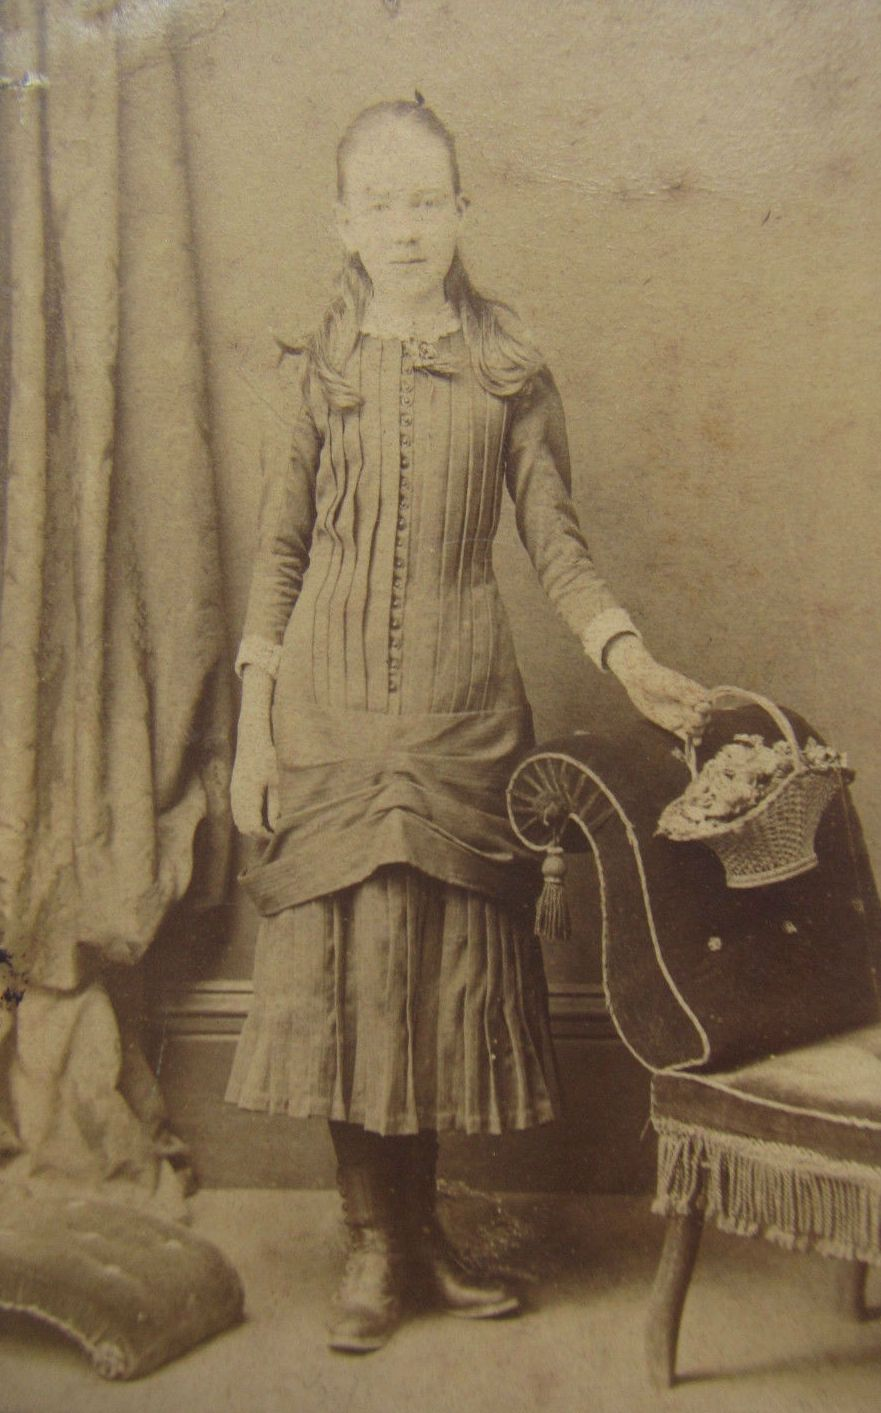 Young Lady c. 1870s-80s